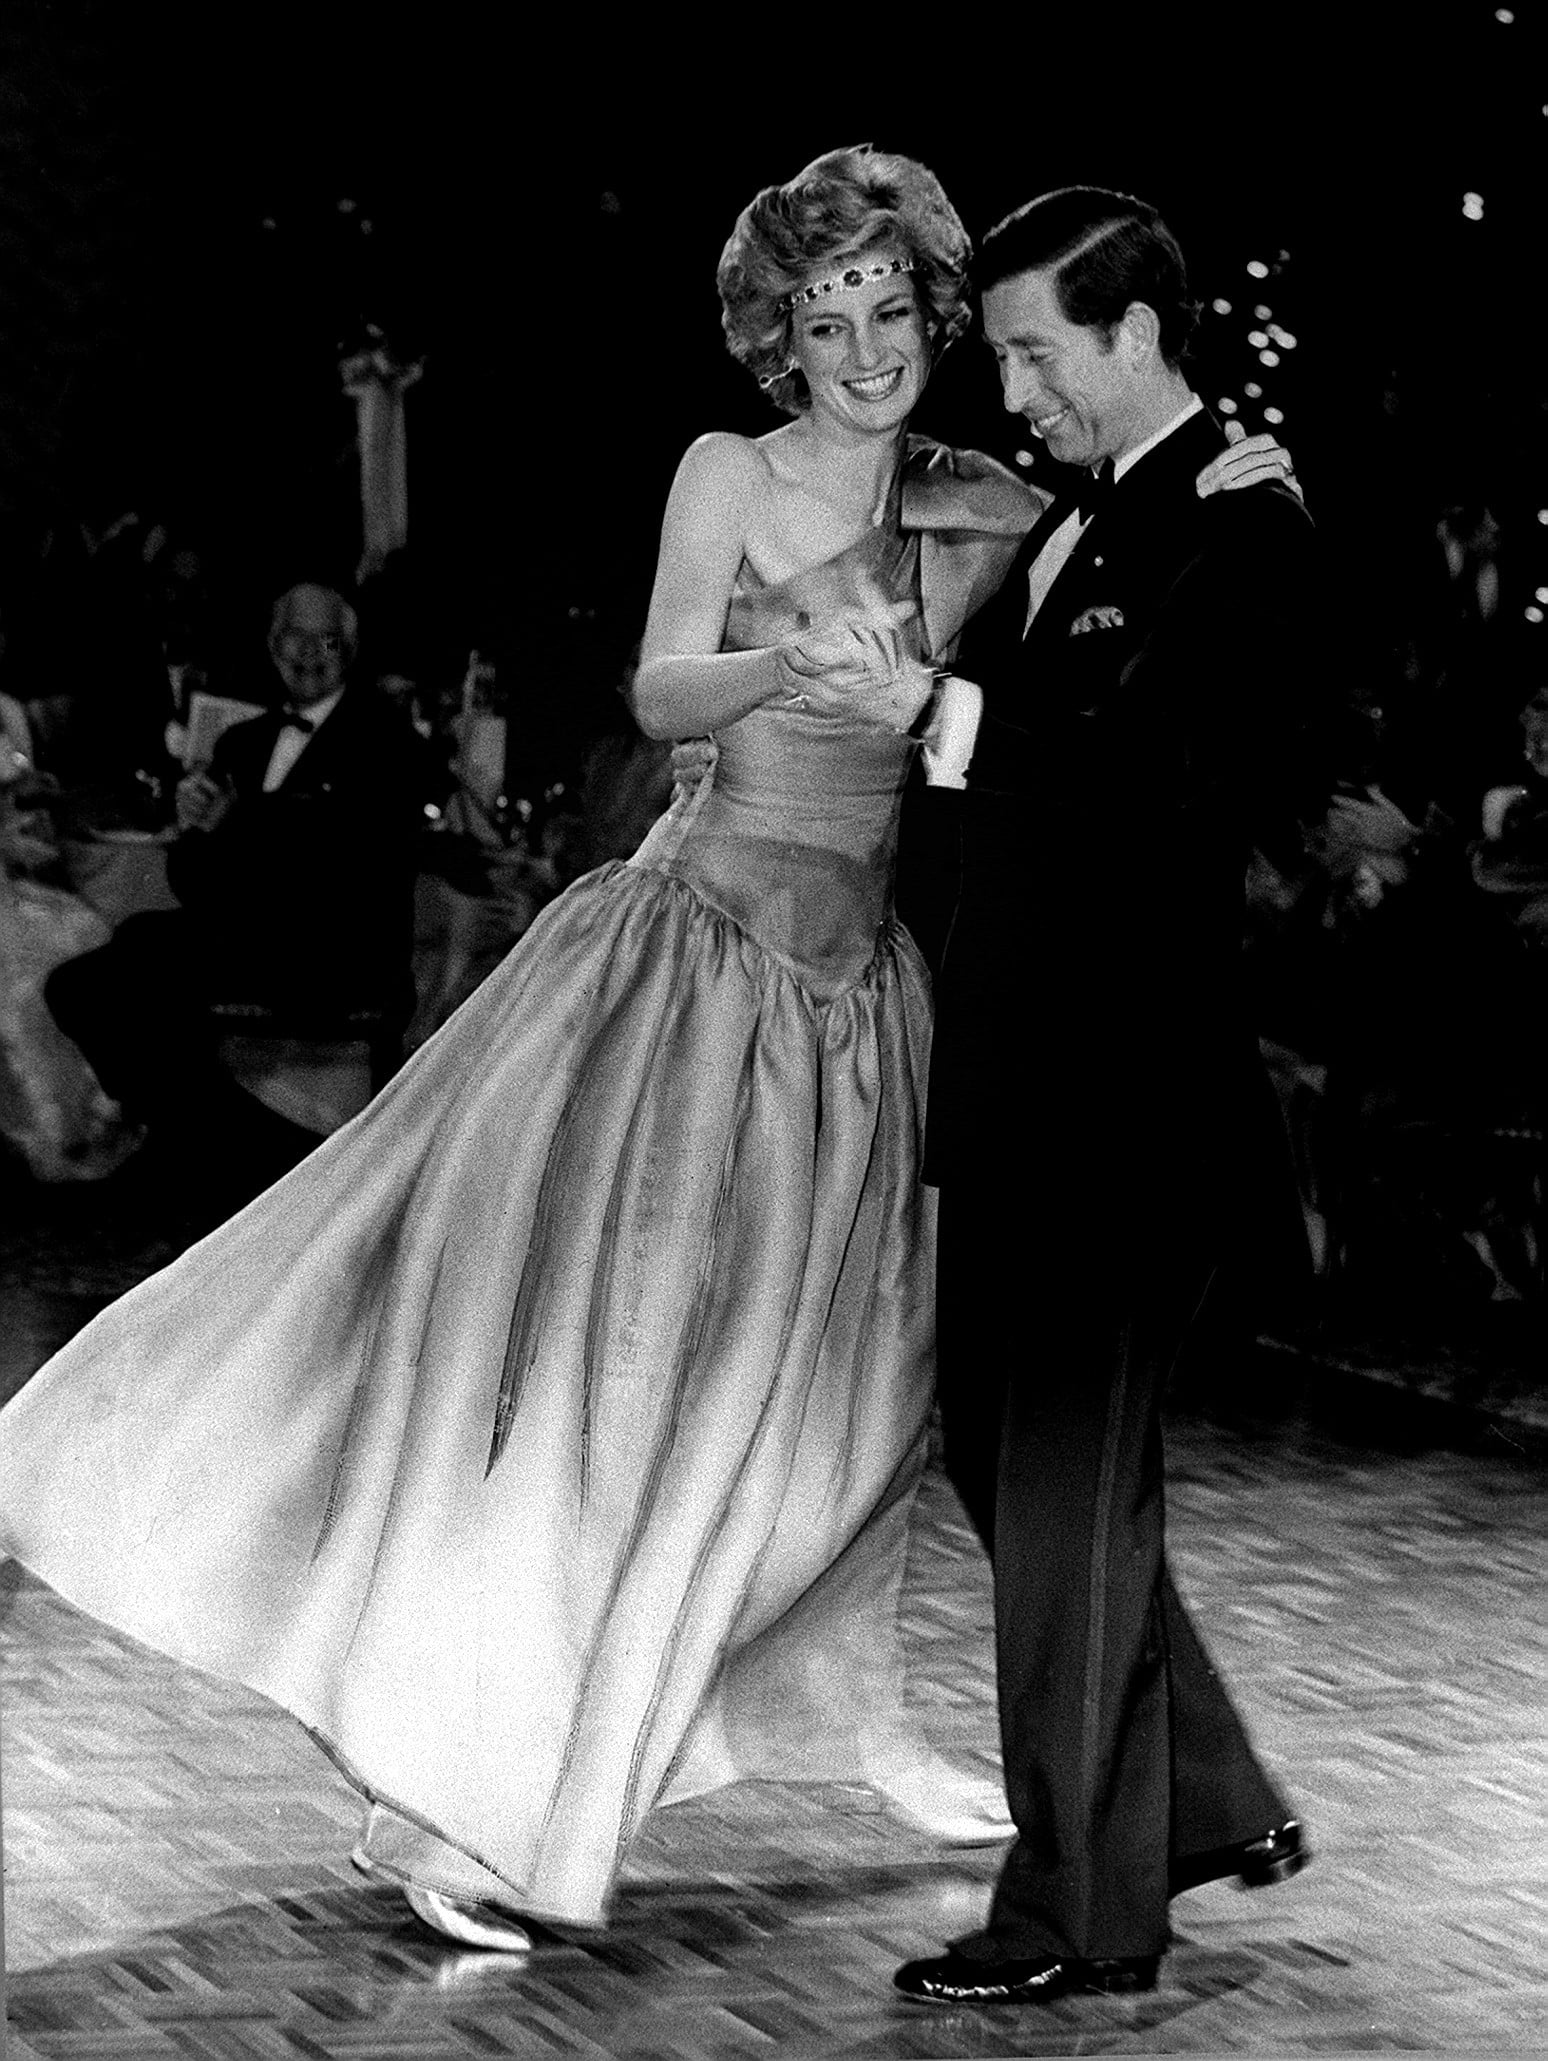 Princess Diana and Prince Charles dancing together in Melbourne Australia in 1985. Diana is wearing the famous £2 million emerald and diamond choker. 30th October 1985. (Photo by Gavin Kent /Mirrorpix/Getty Images)